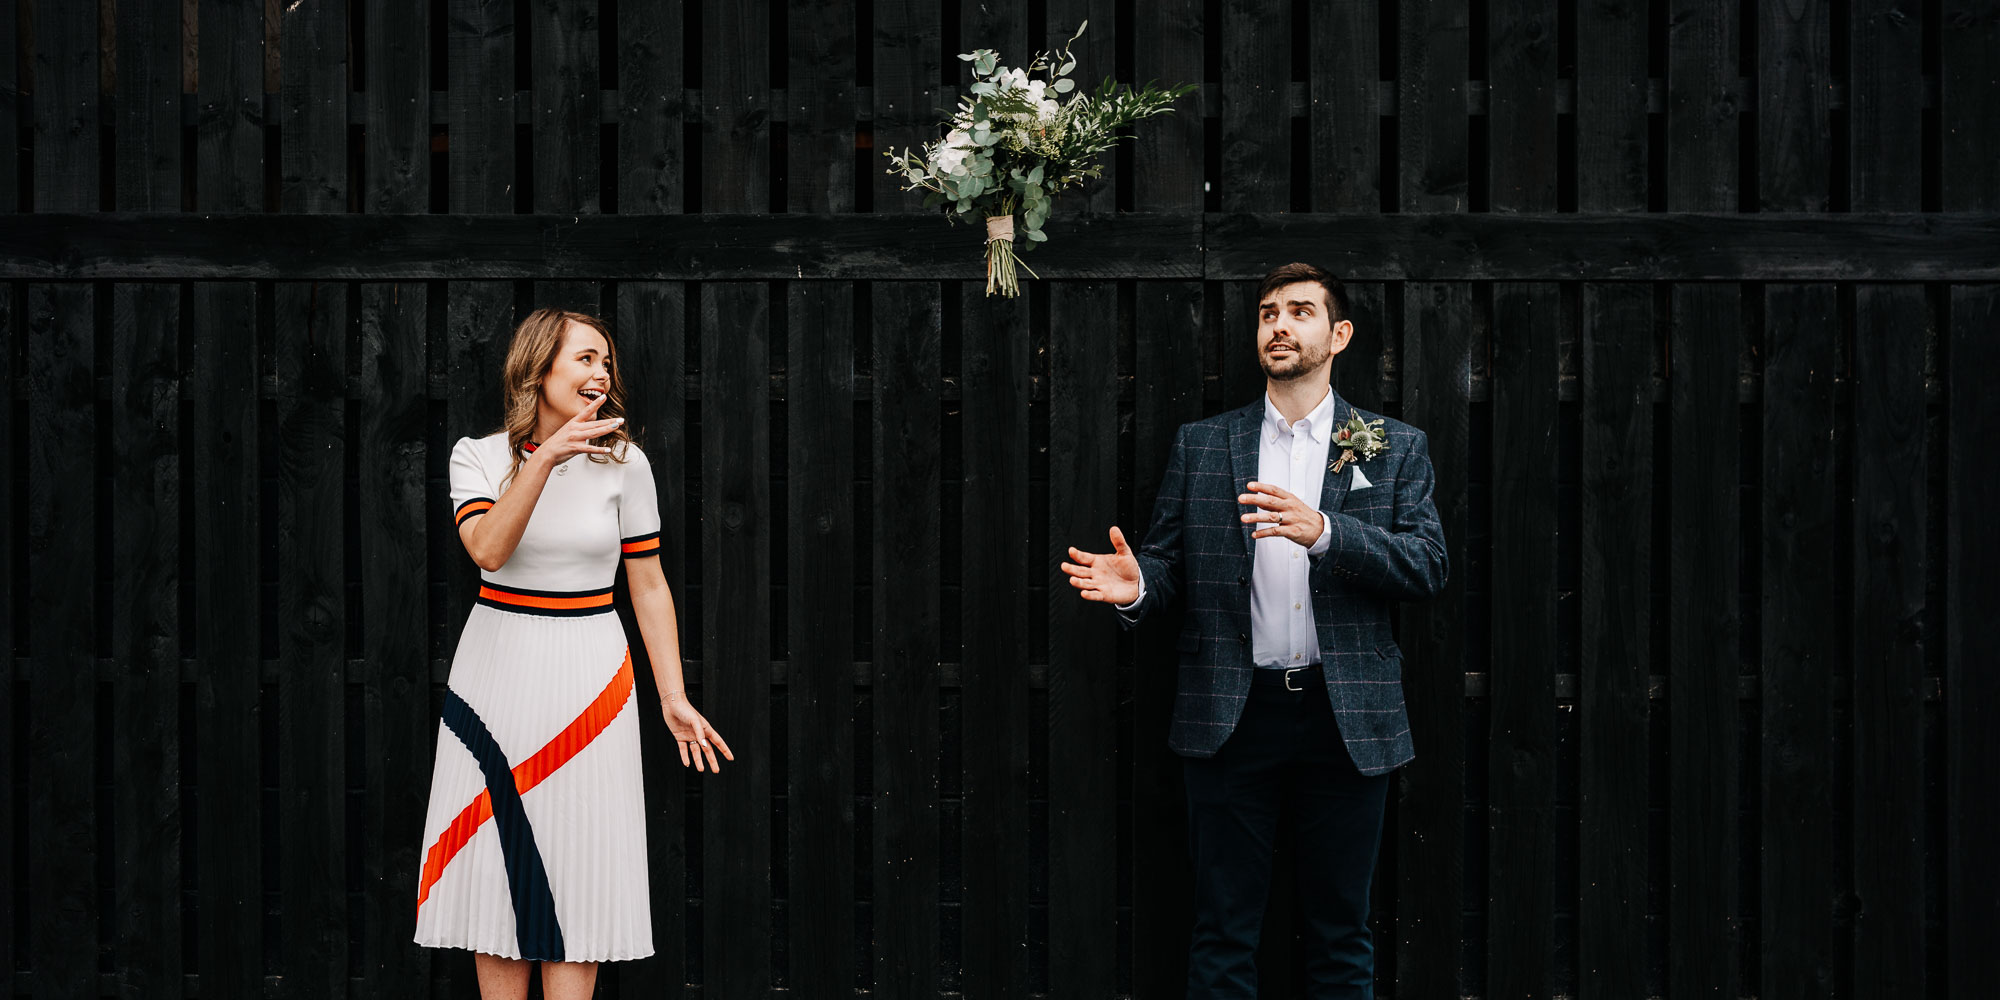 Bride and groom having fun throwing bouquet at each other in front of barn doors